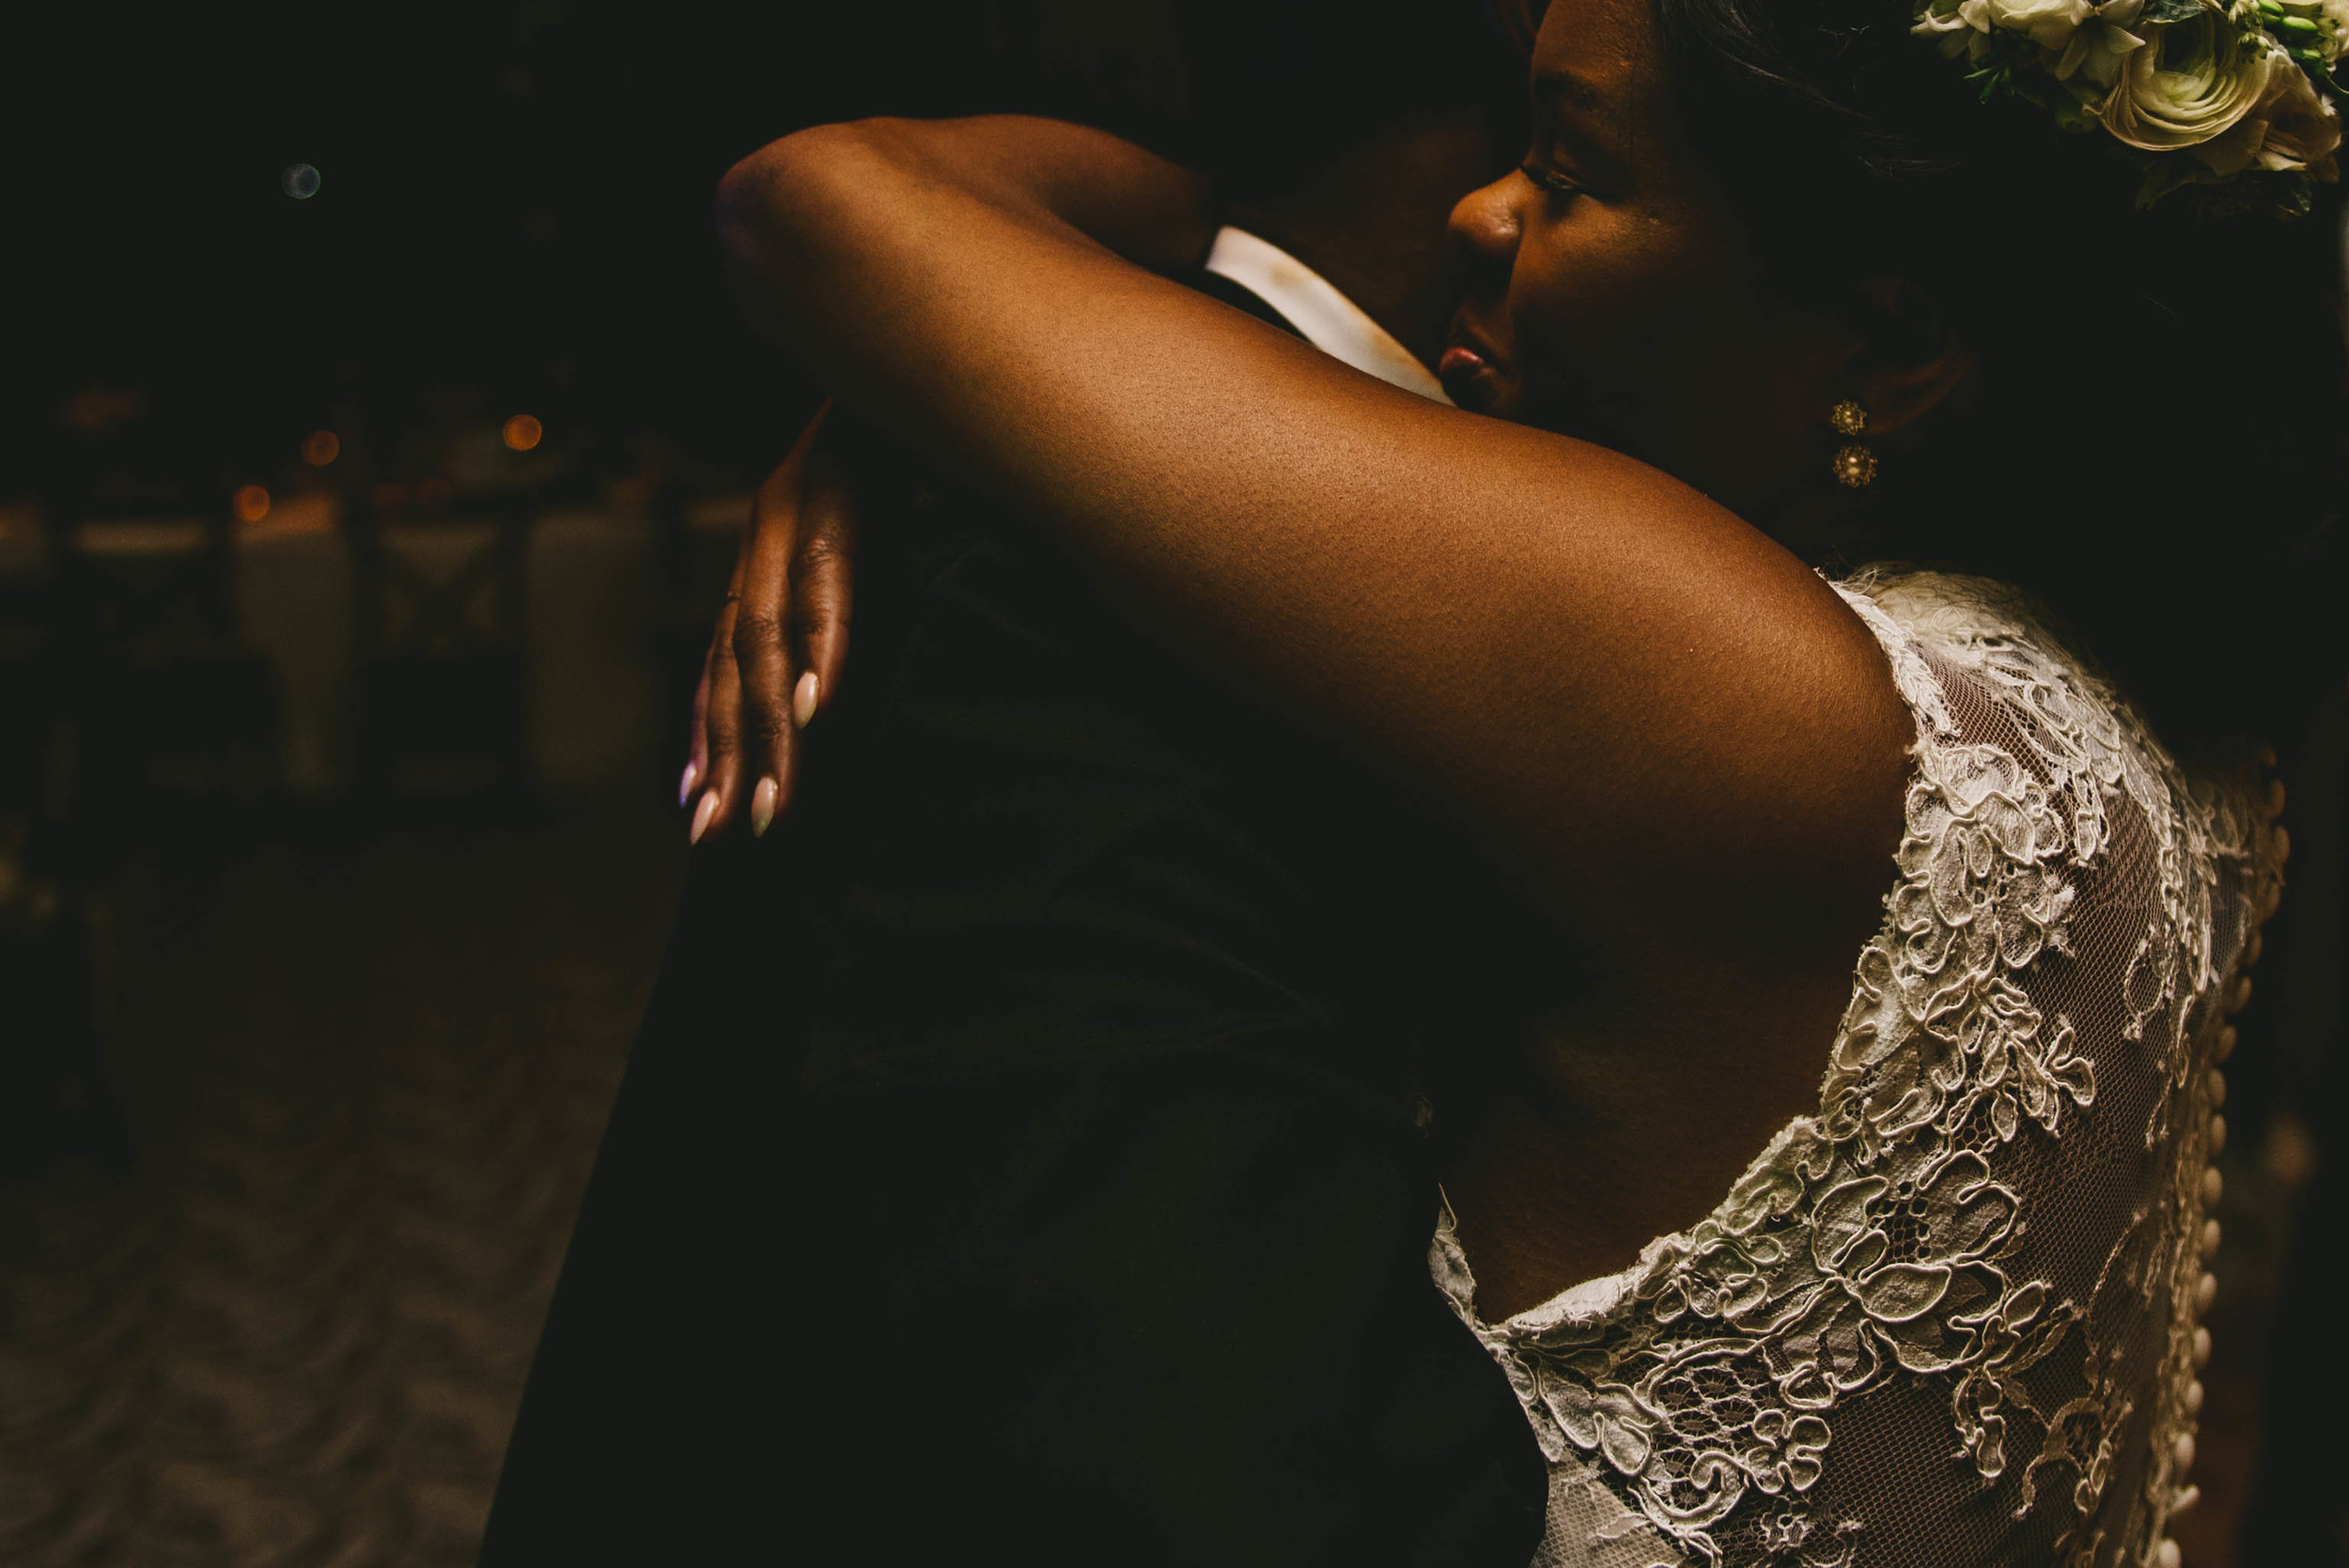 The bride and groom share a hug during their elegant Raleigh wedding